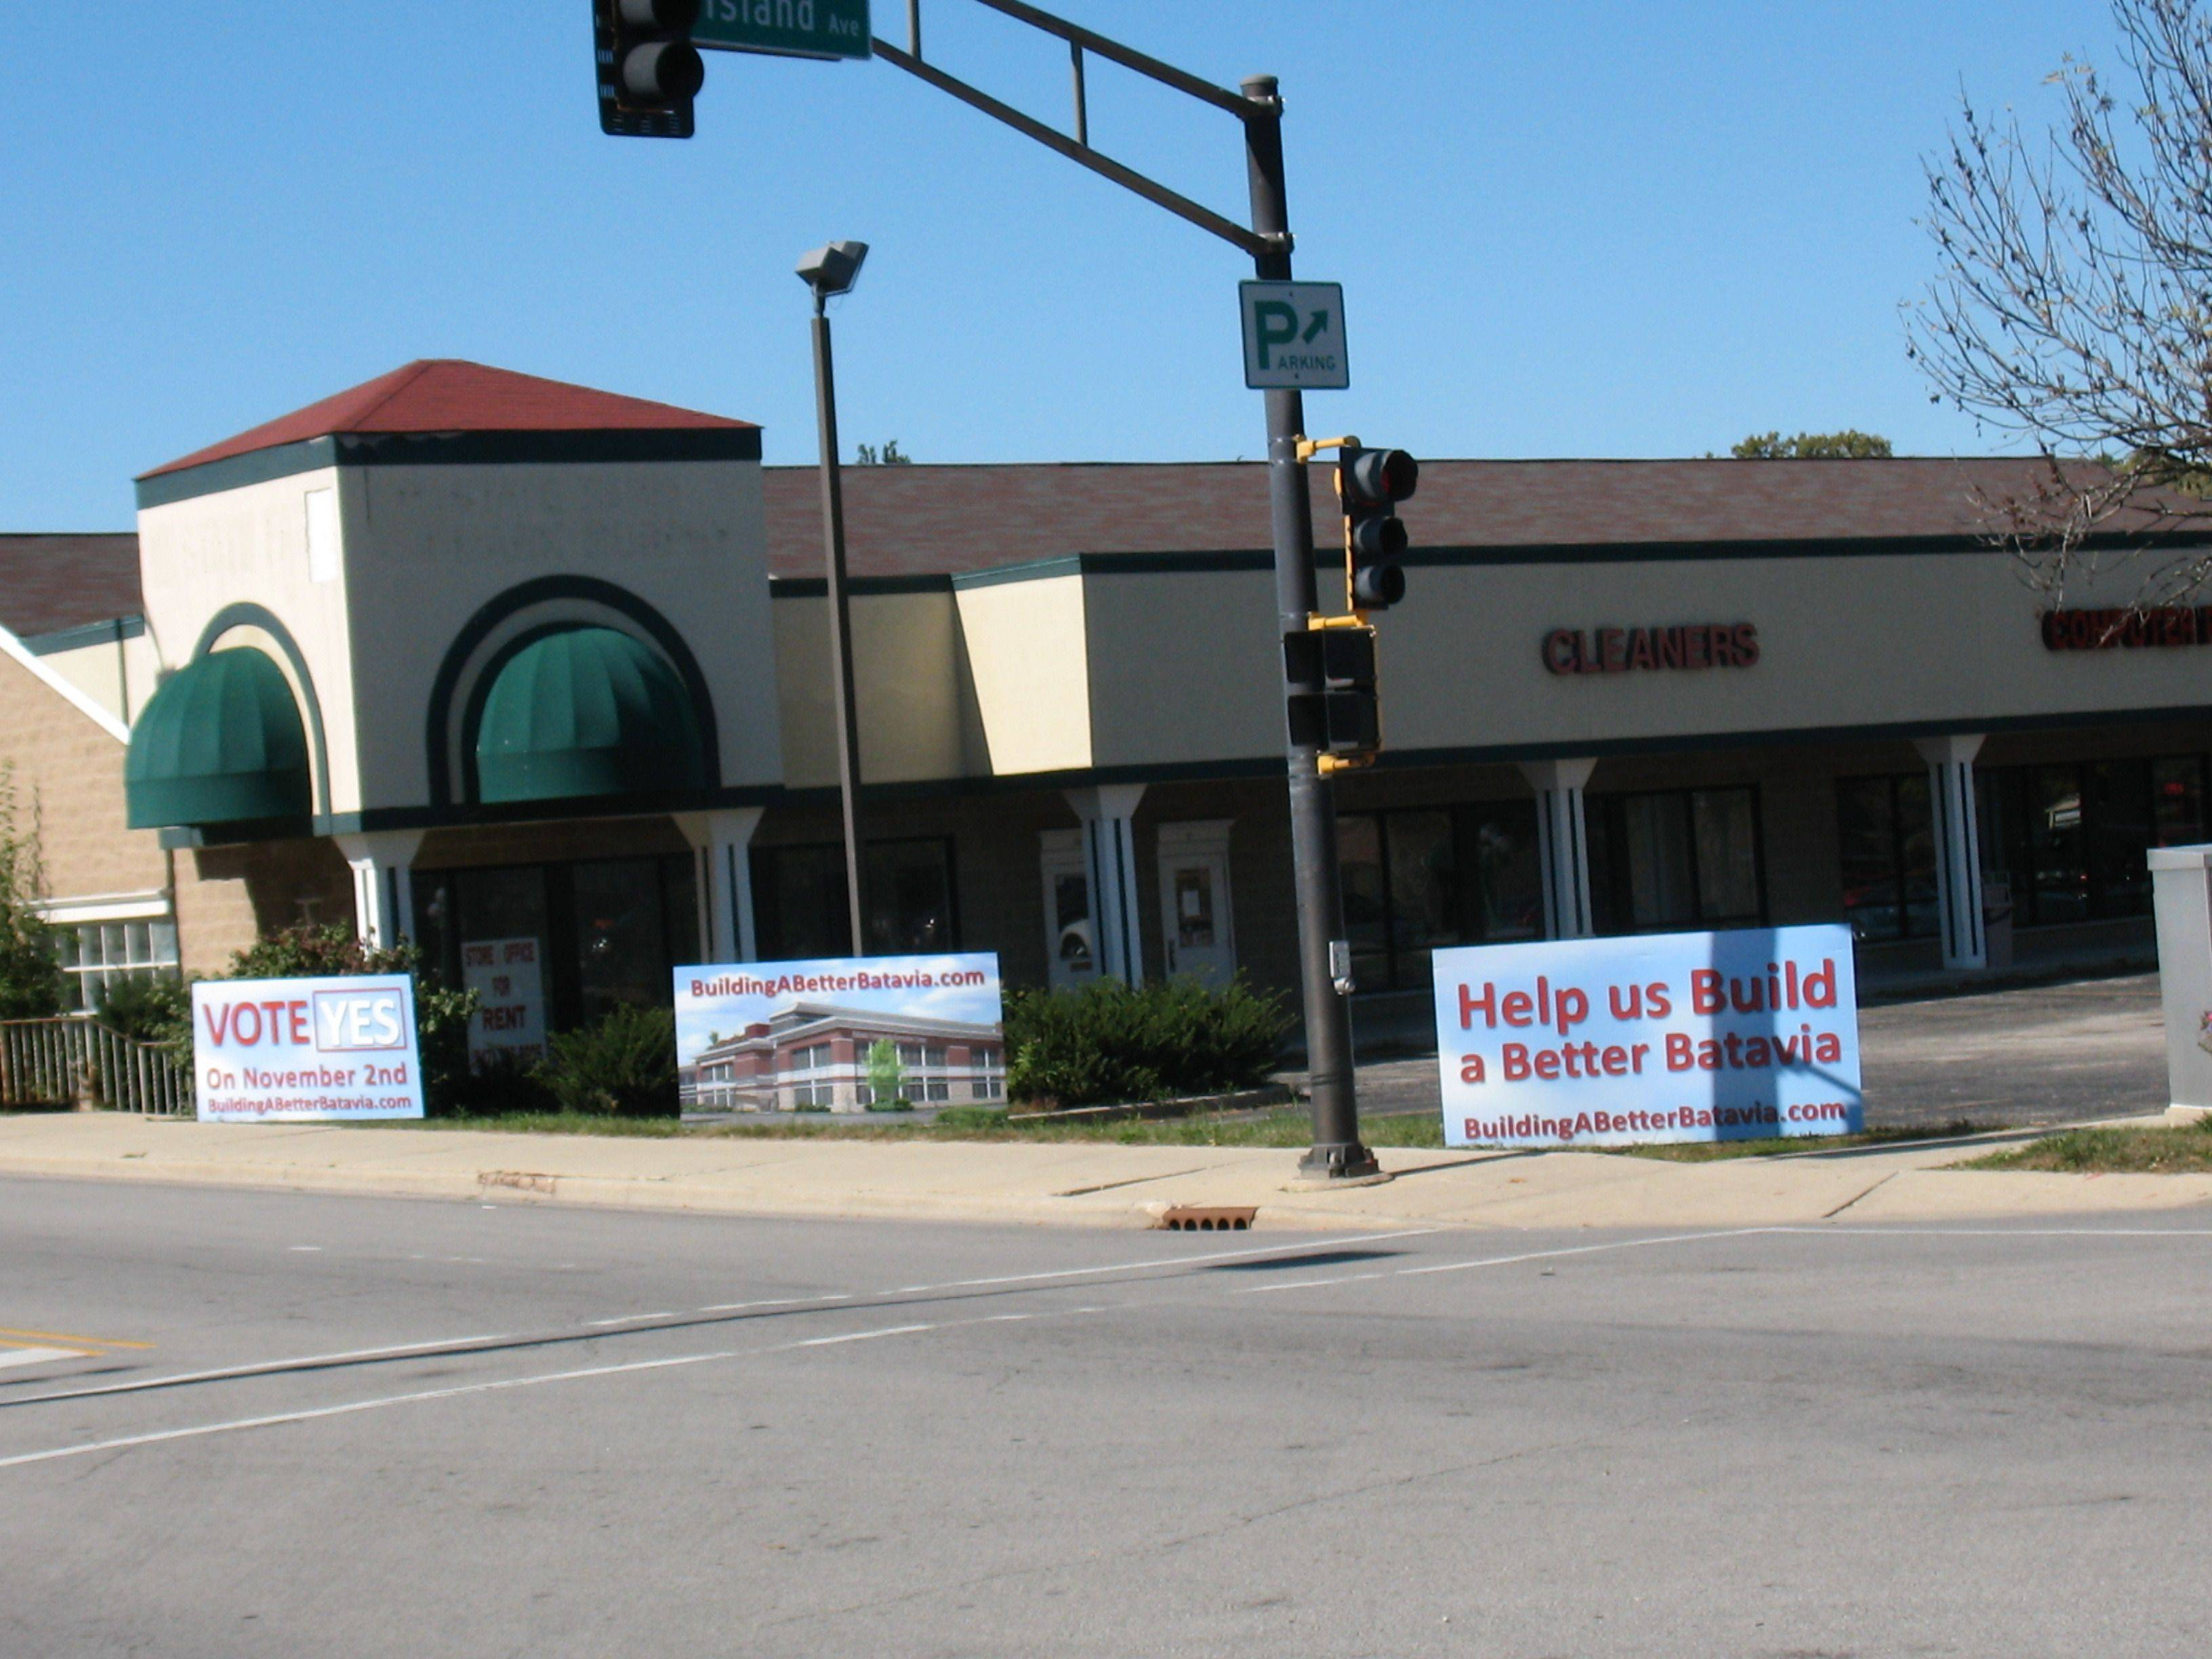 People in favor of a new recreation center in Batavia have let their feelings be known with signs in the downtown area.